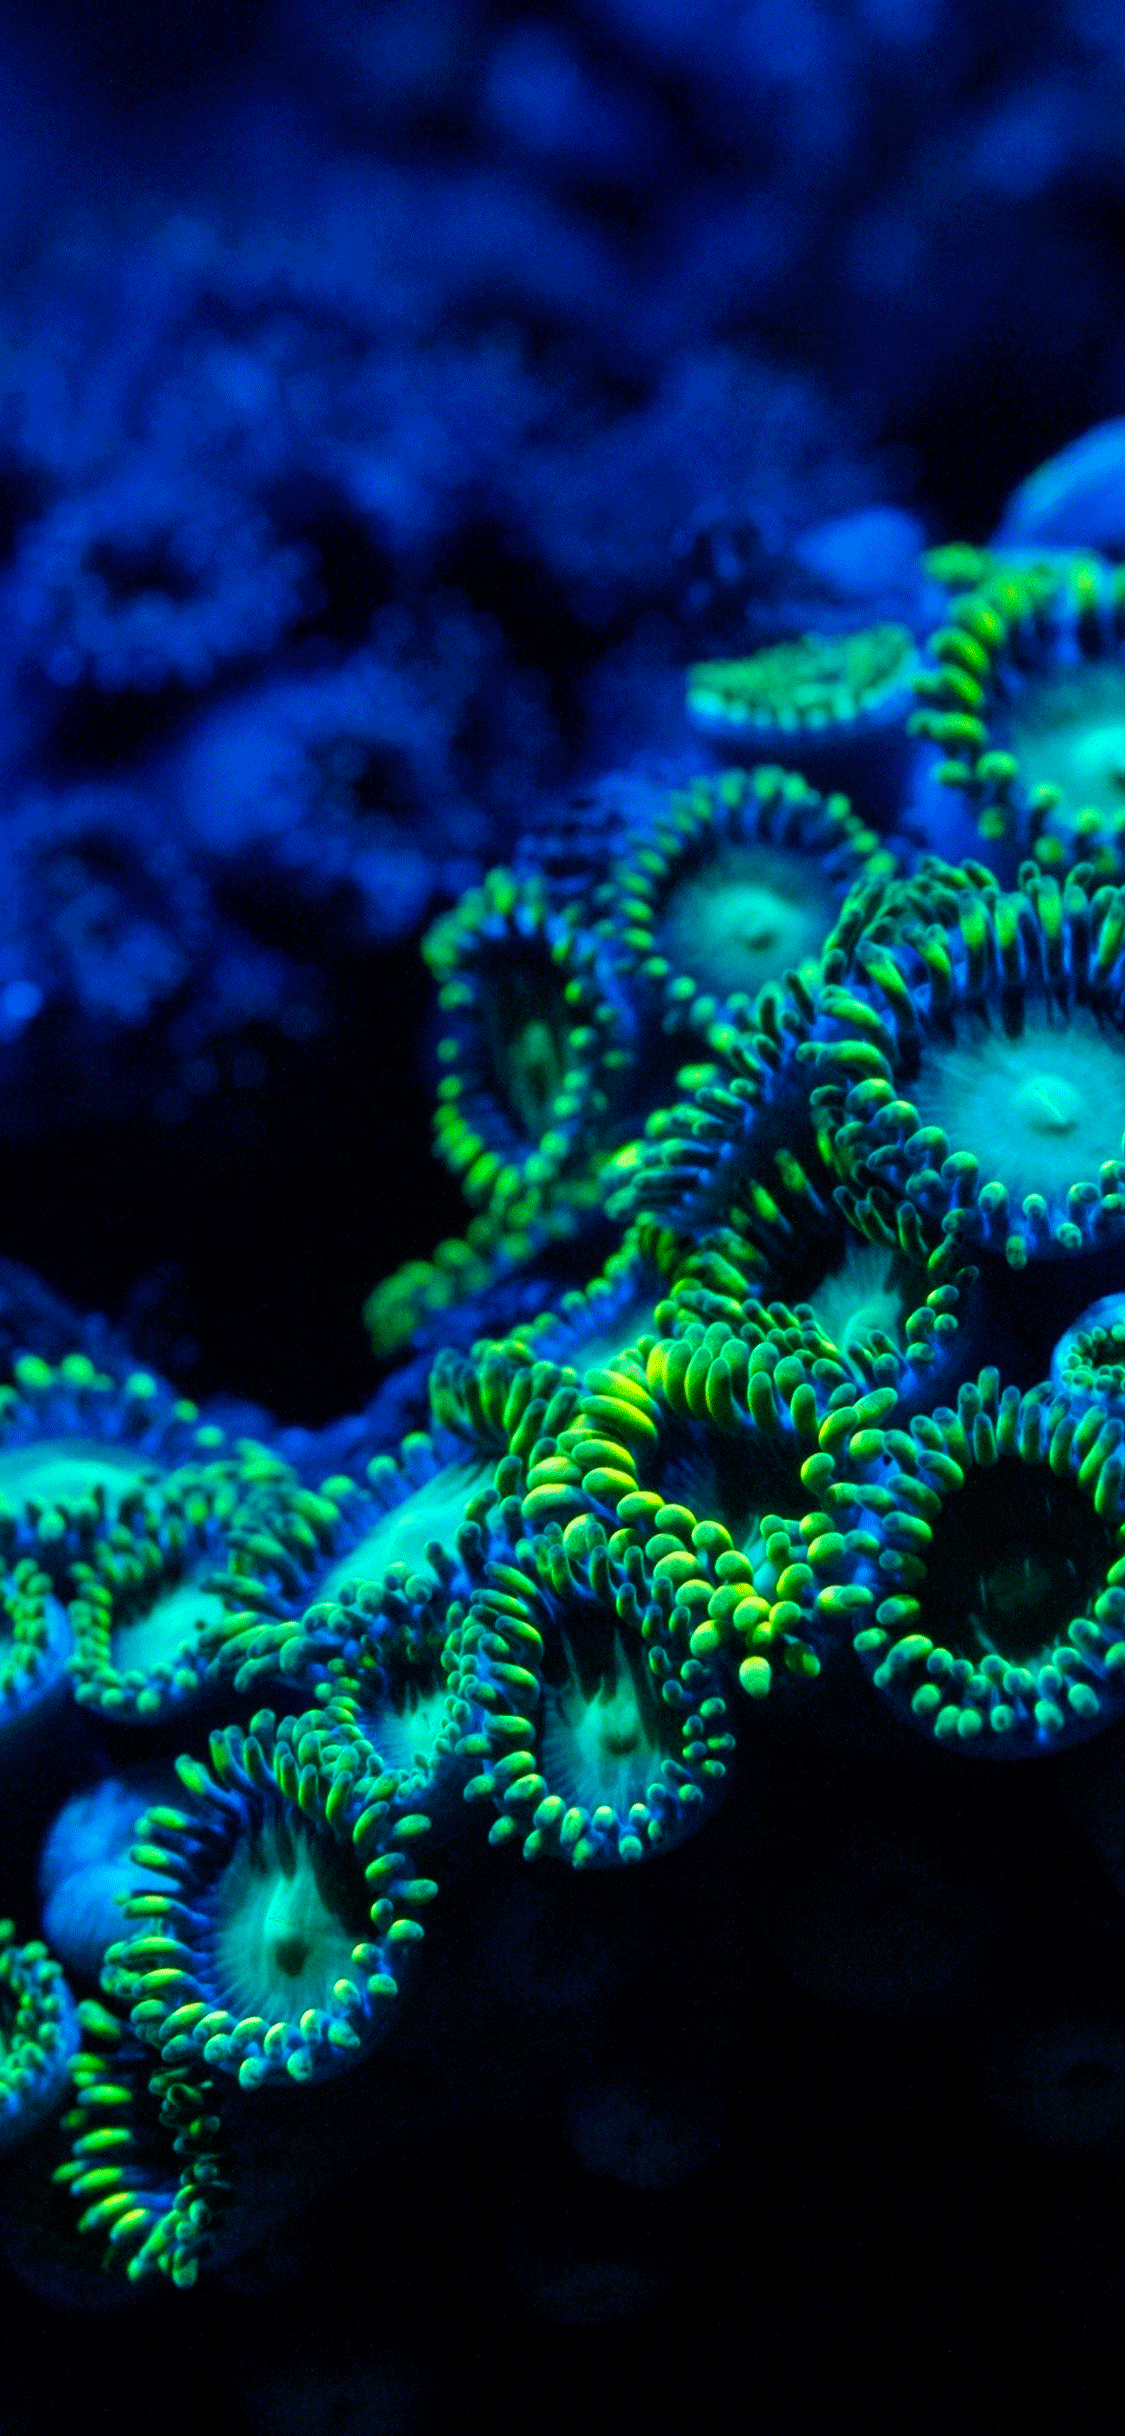 iPhone wallpaper coral reef 1 Fonds d'écran iPhone du 03/07/2018